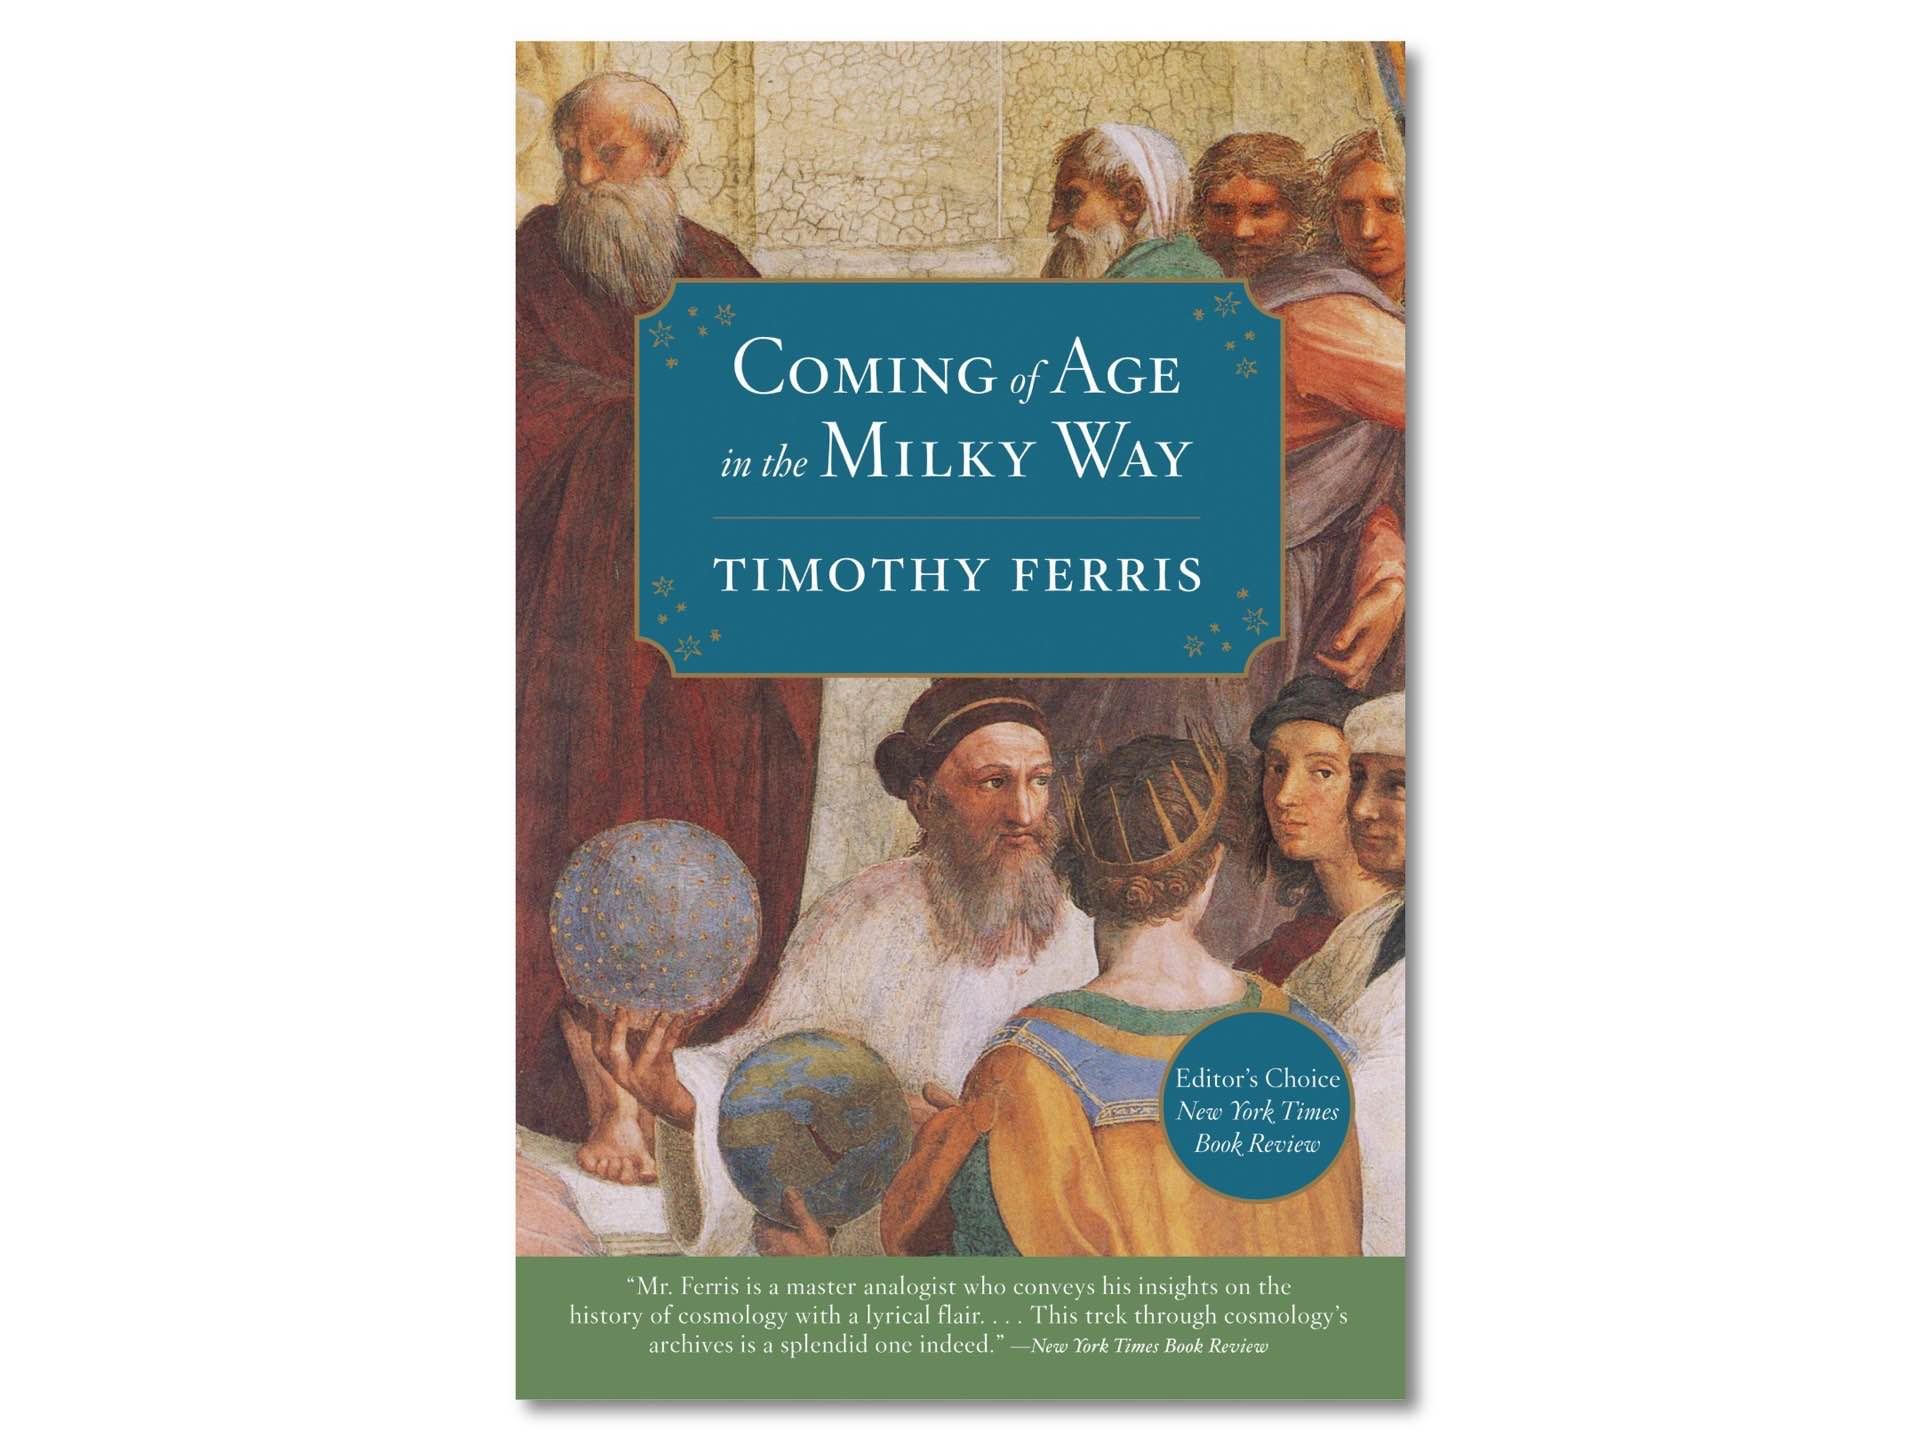 coming-of-age-in-the-milky-way-by-timothy-ferriss